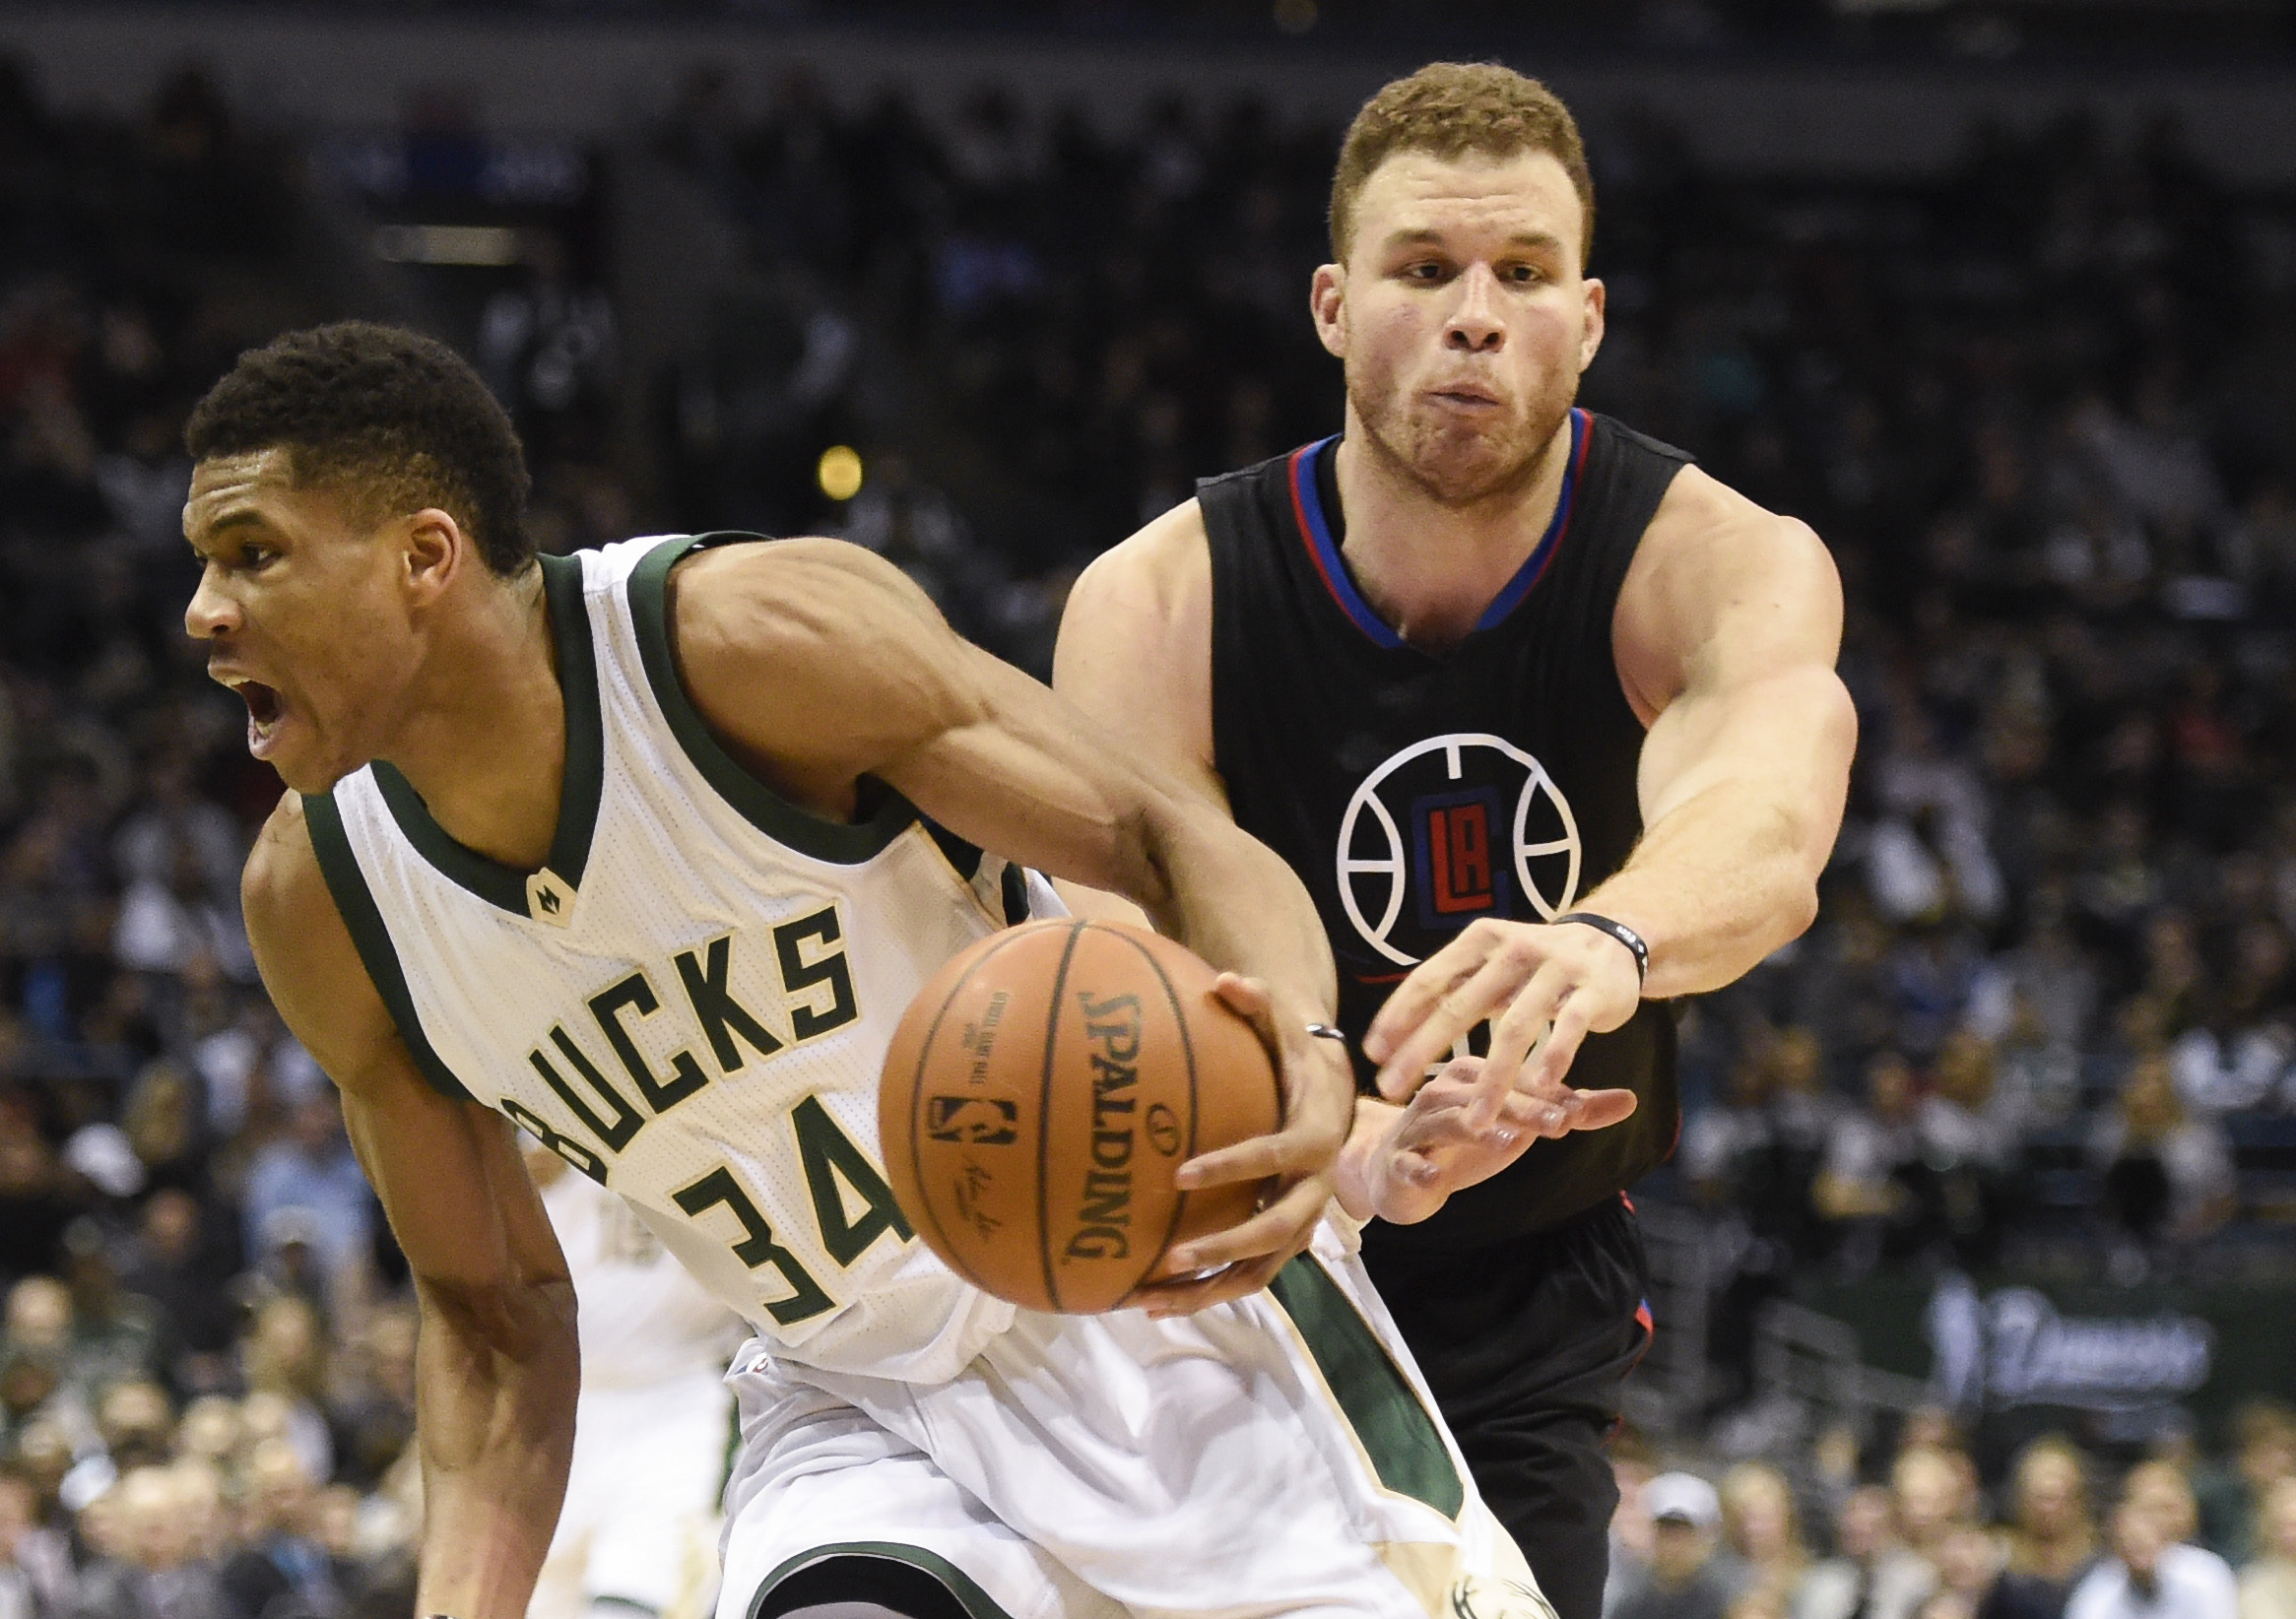 Bucks at Clippers live stream: How to watch online - FanSided